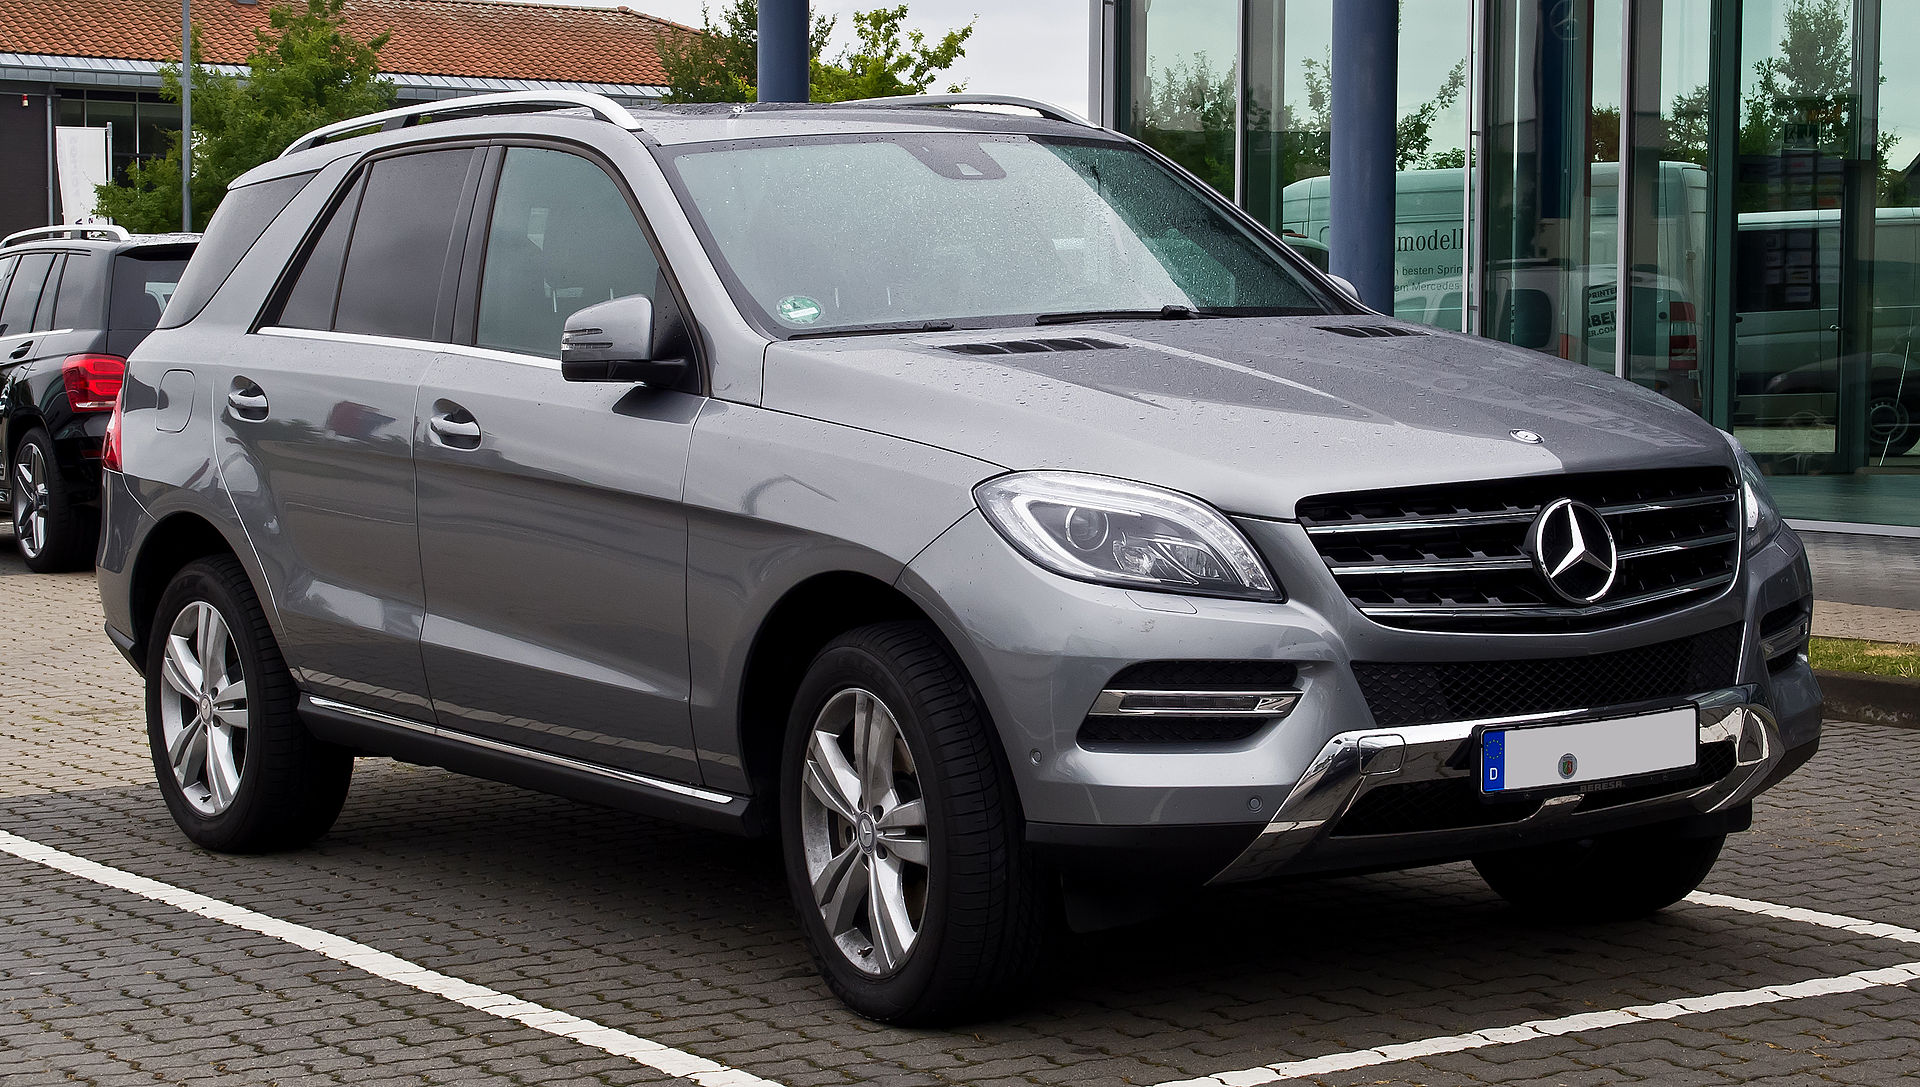 Mercedes benz m class wikipedia for Mercedes benz m class mercedes suv